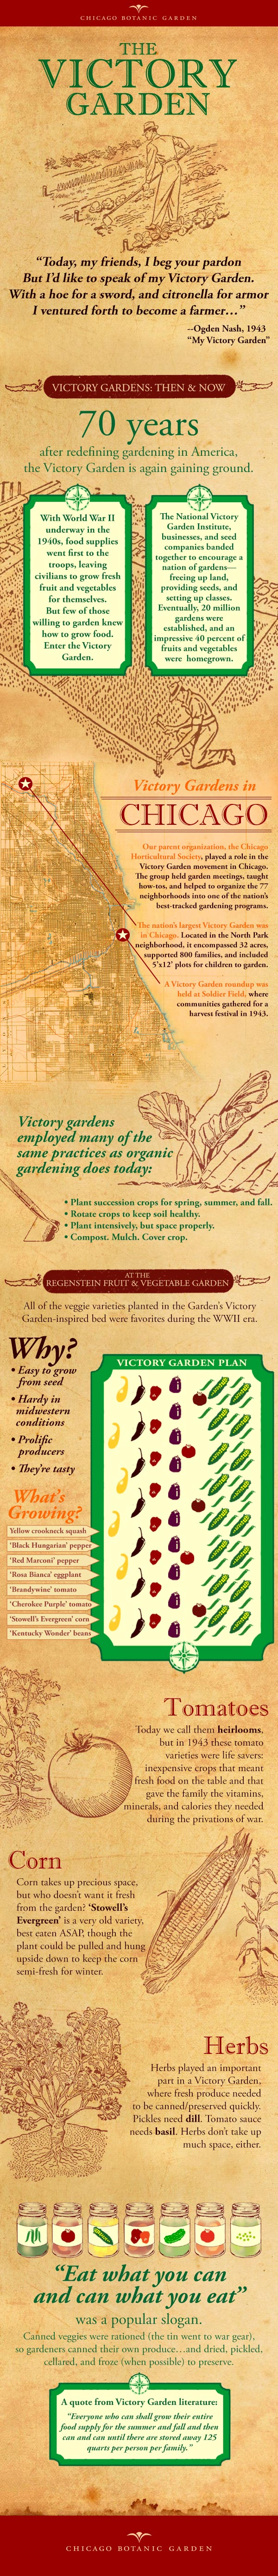 An infographic about Victory Gardens